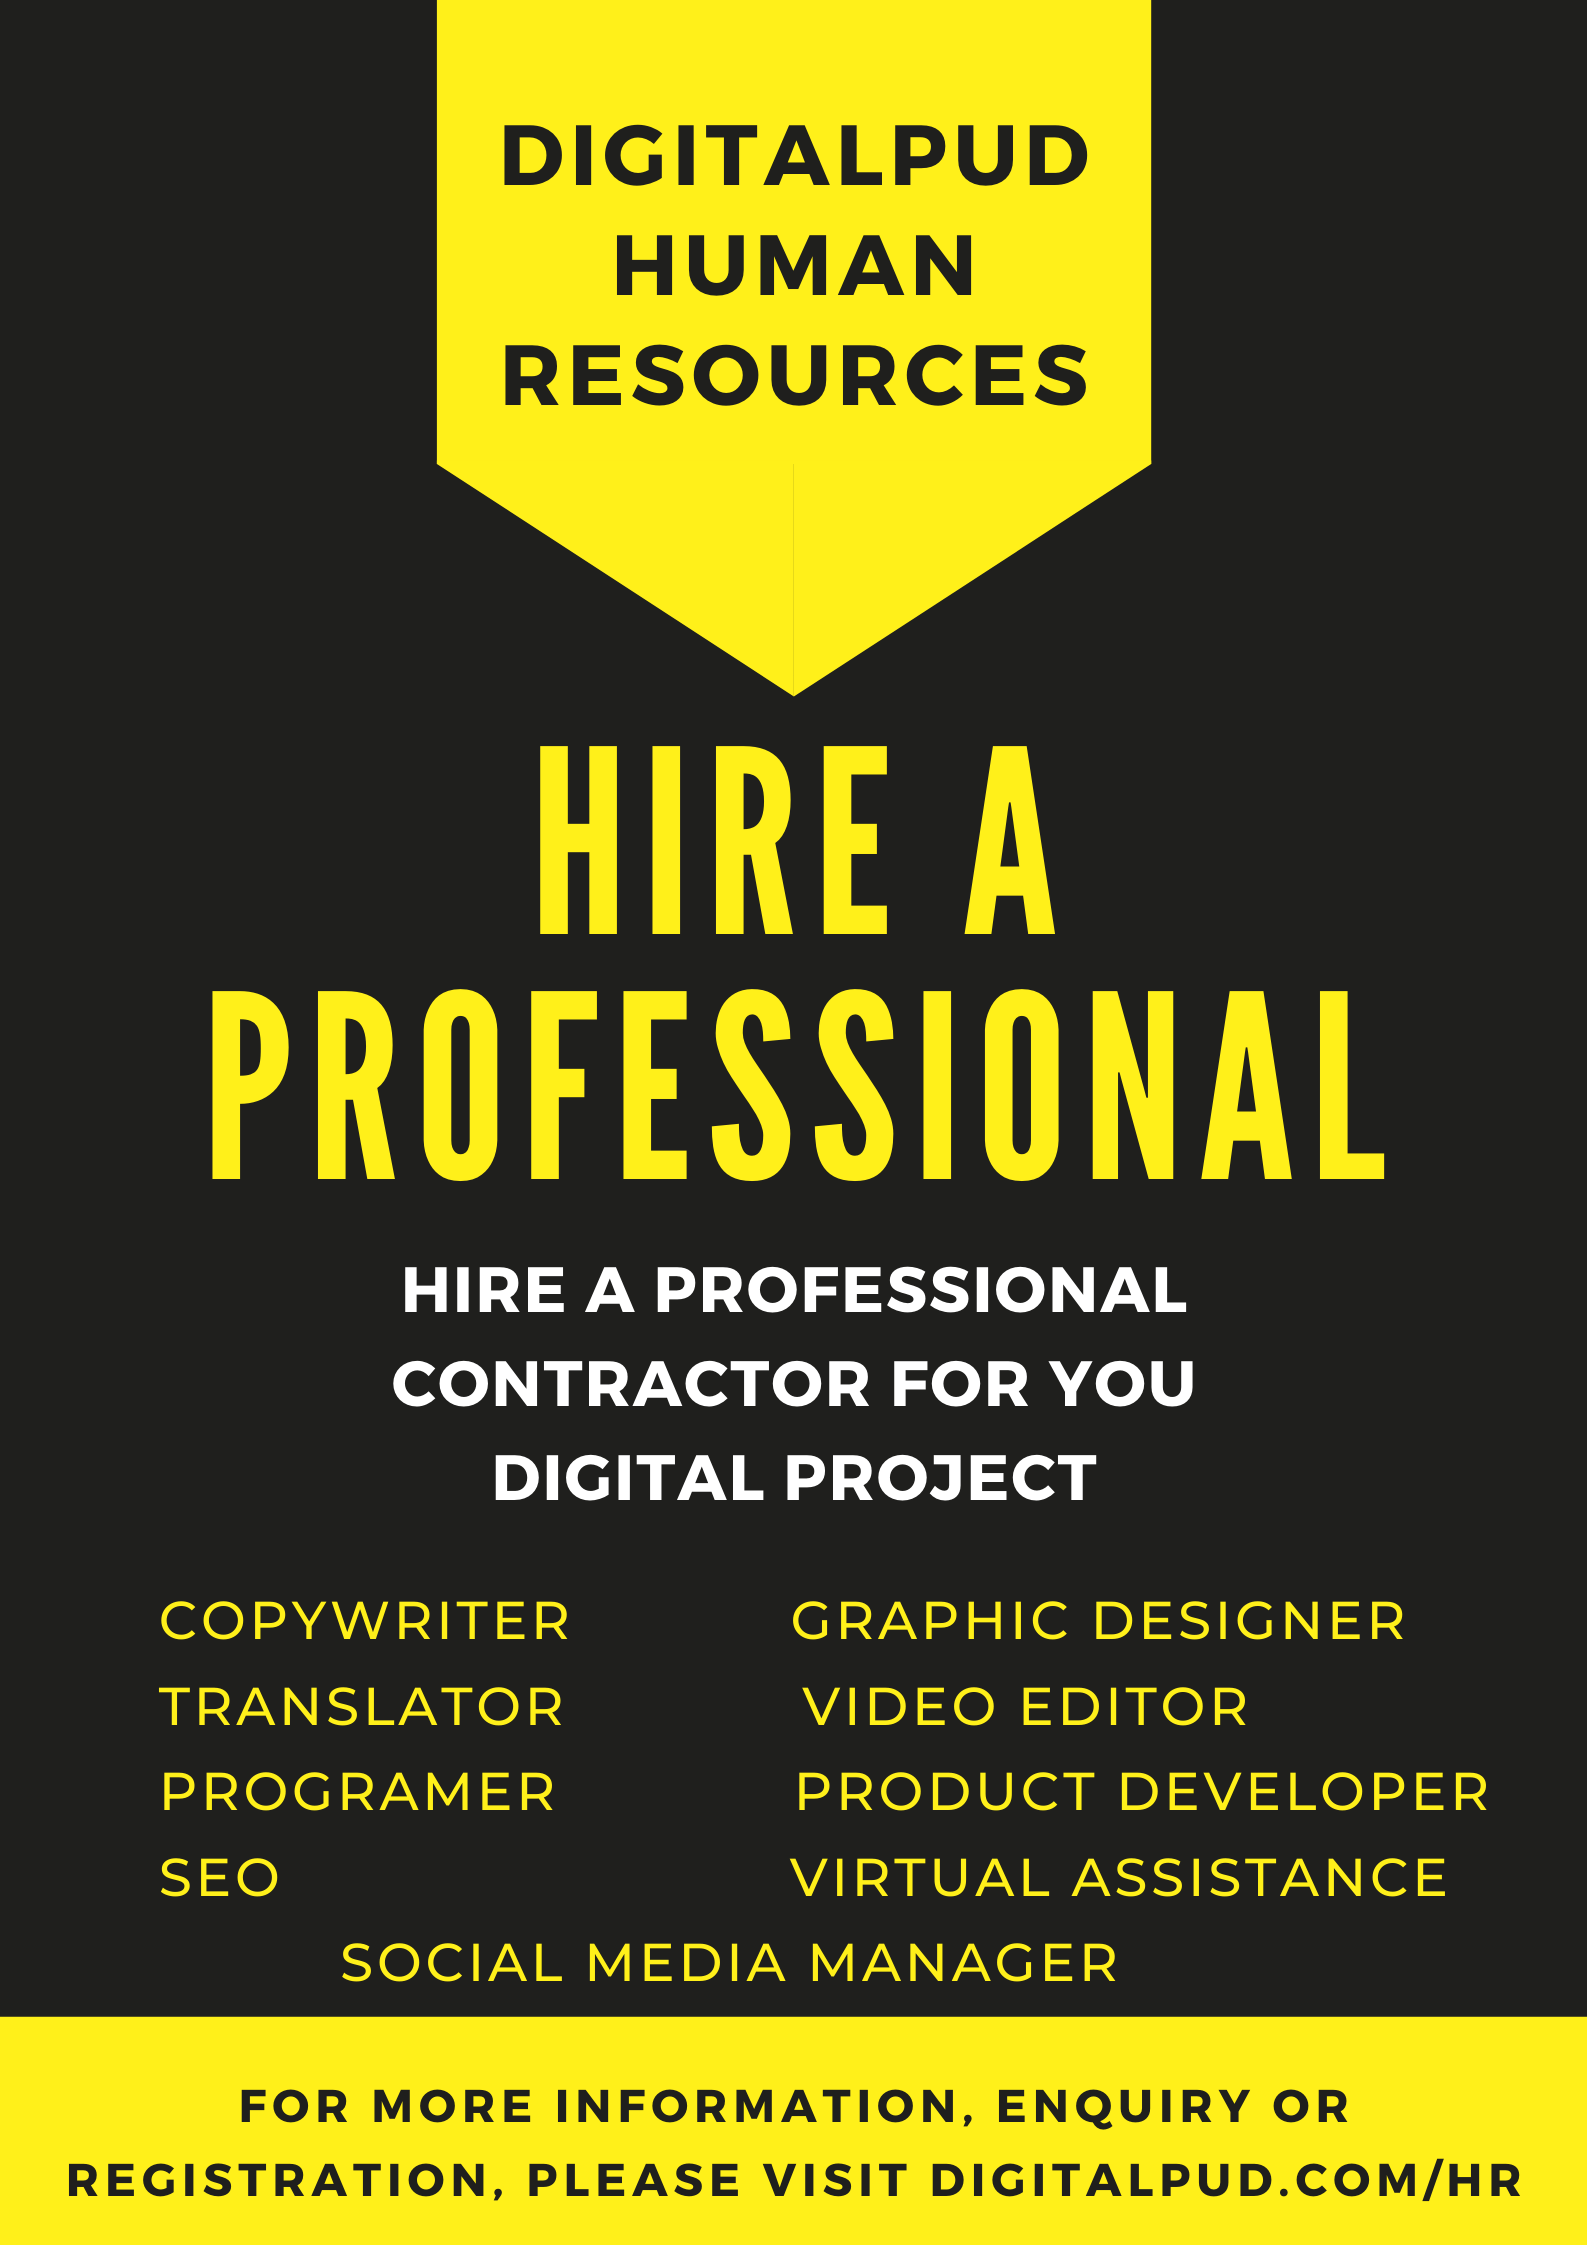 DigitalPud Human Resources